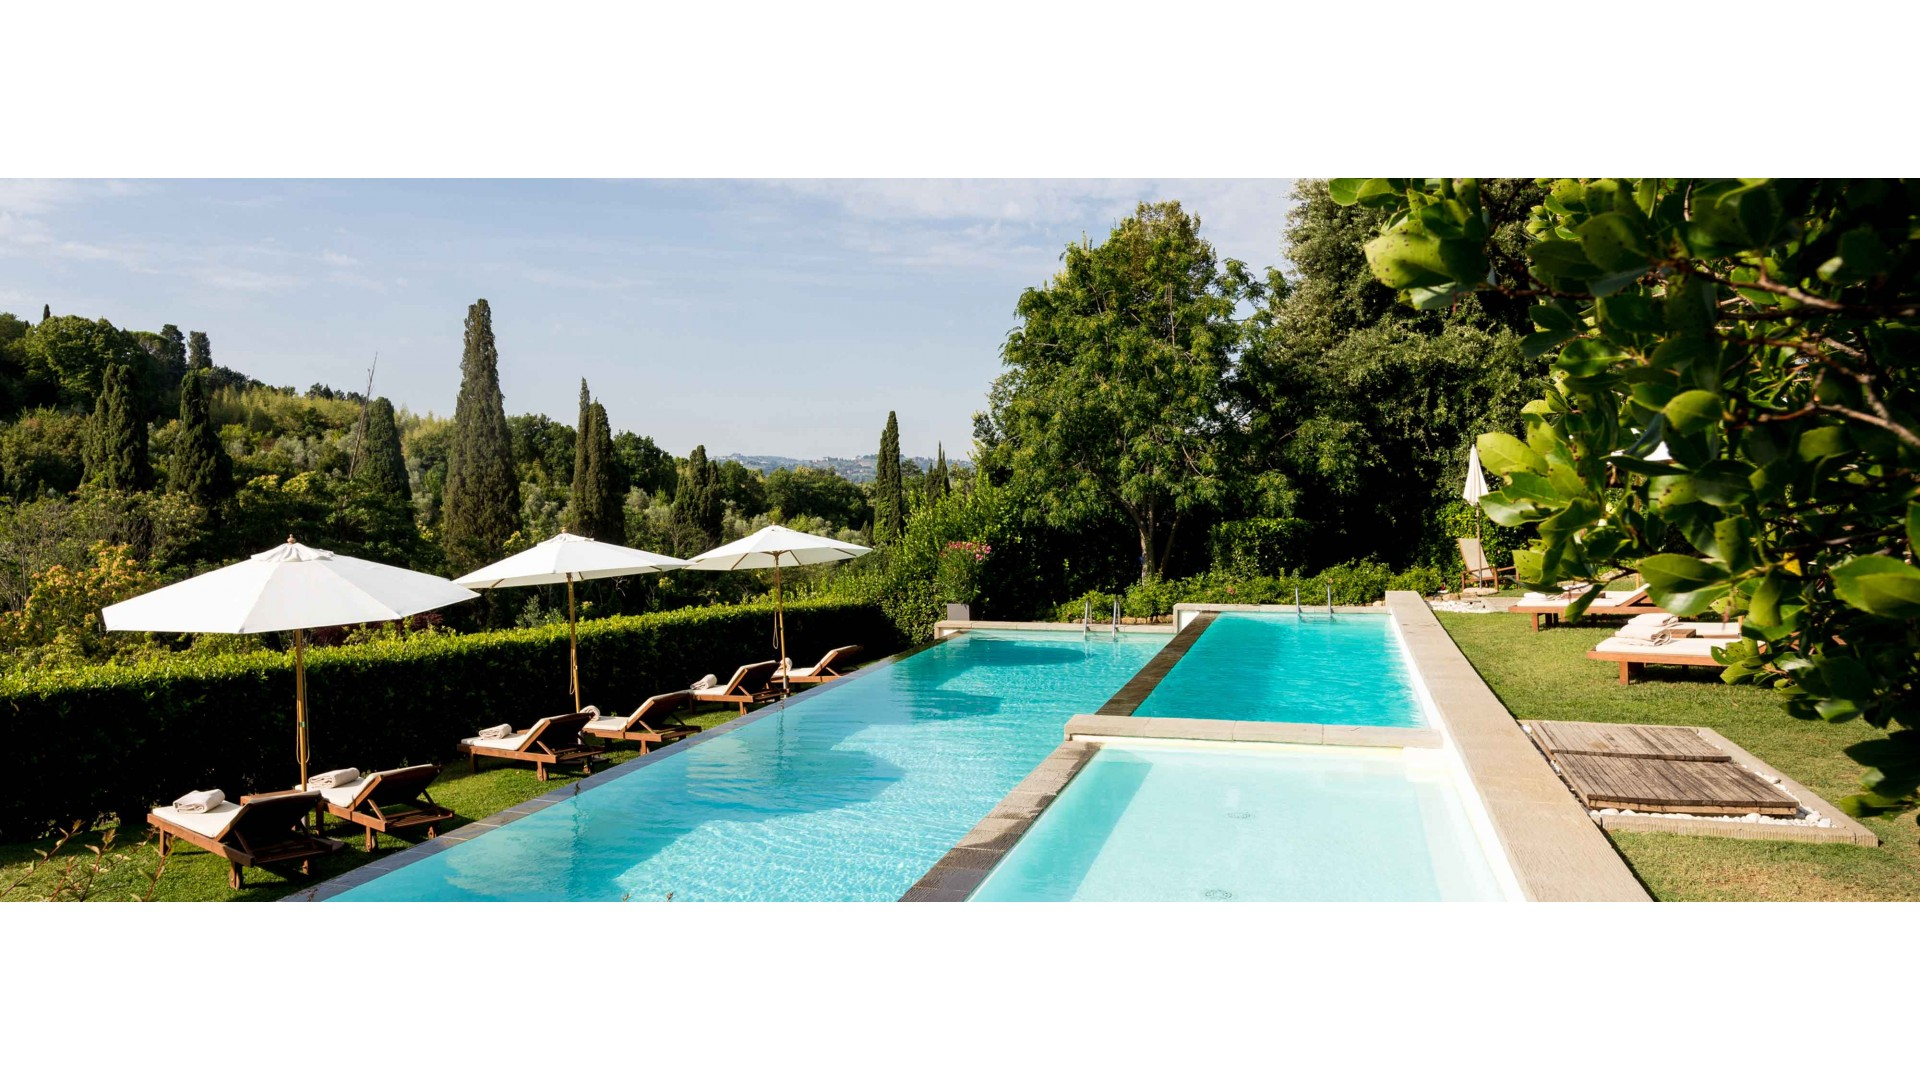 Il Salviatino hotel - Fiesole, Florence - Tuscany - Smith Hotels